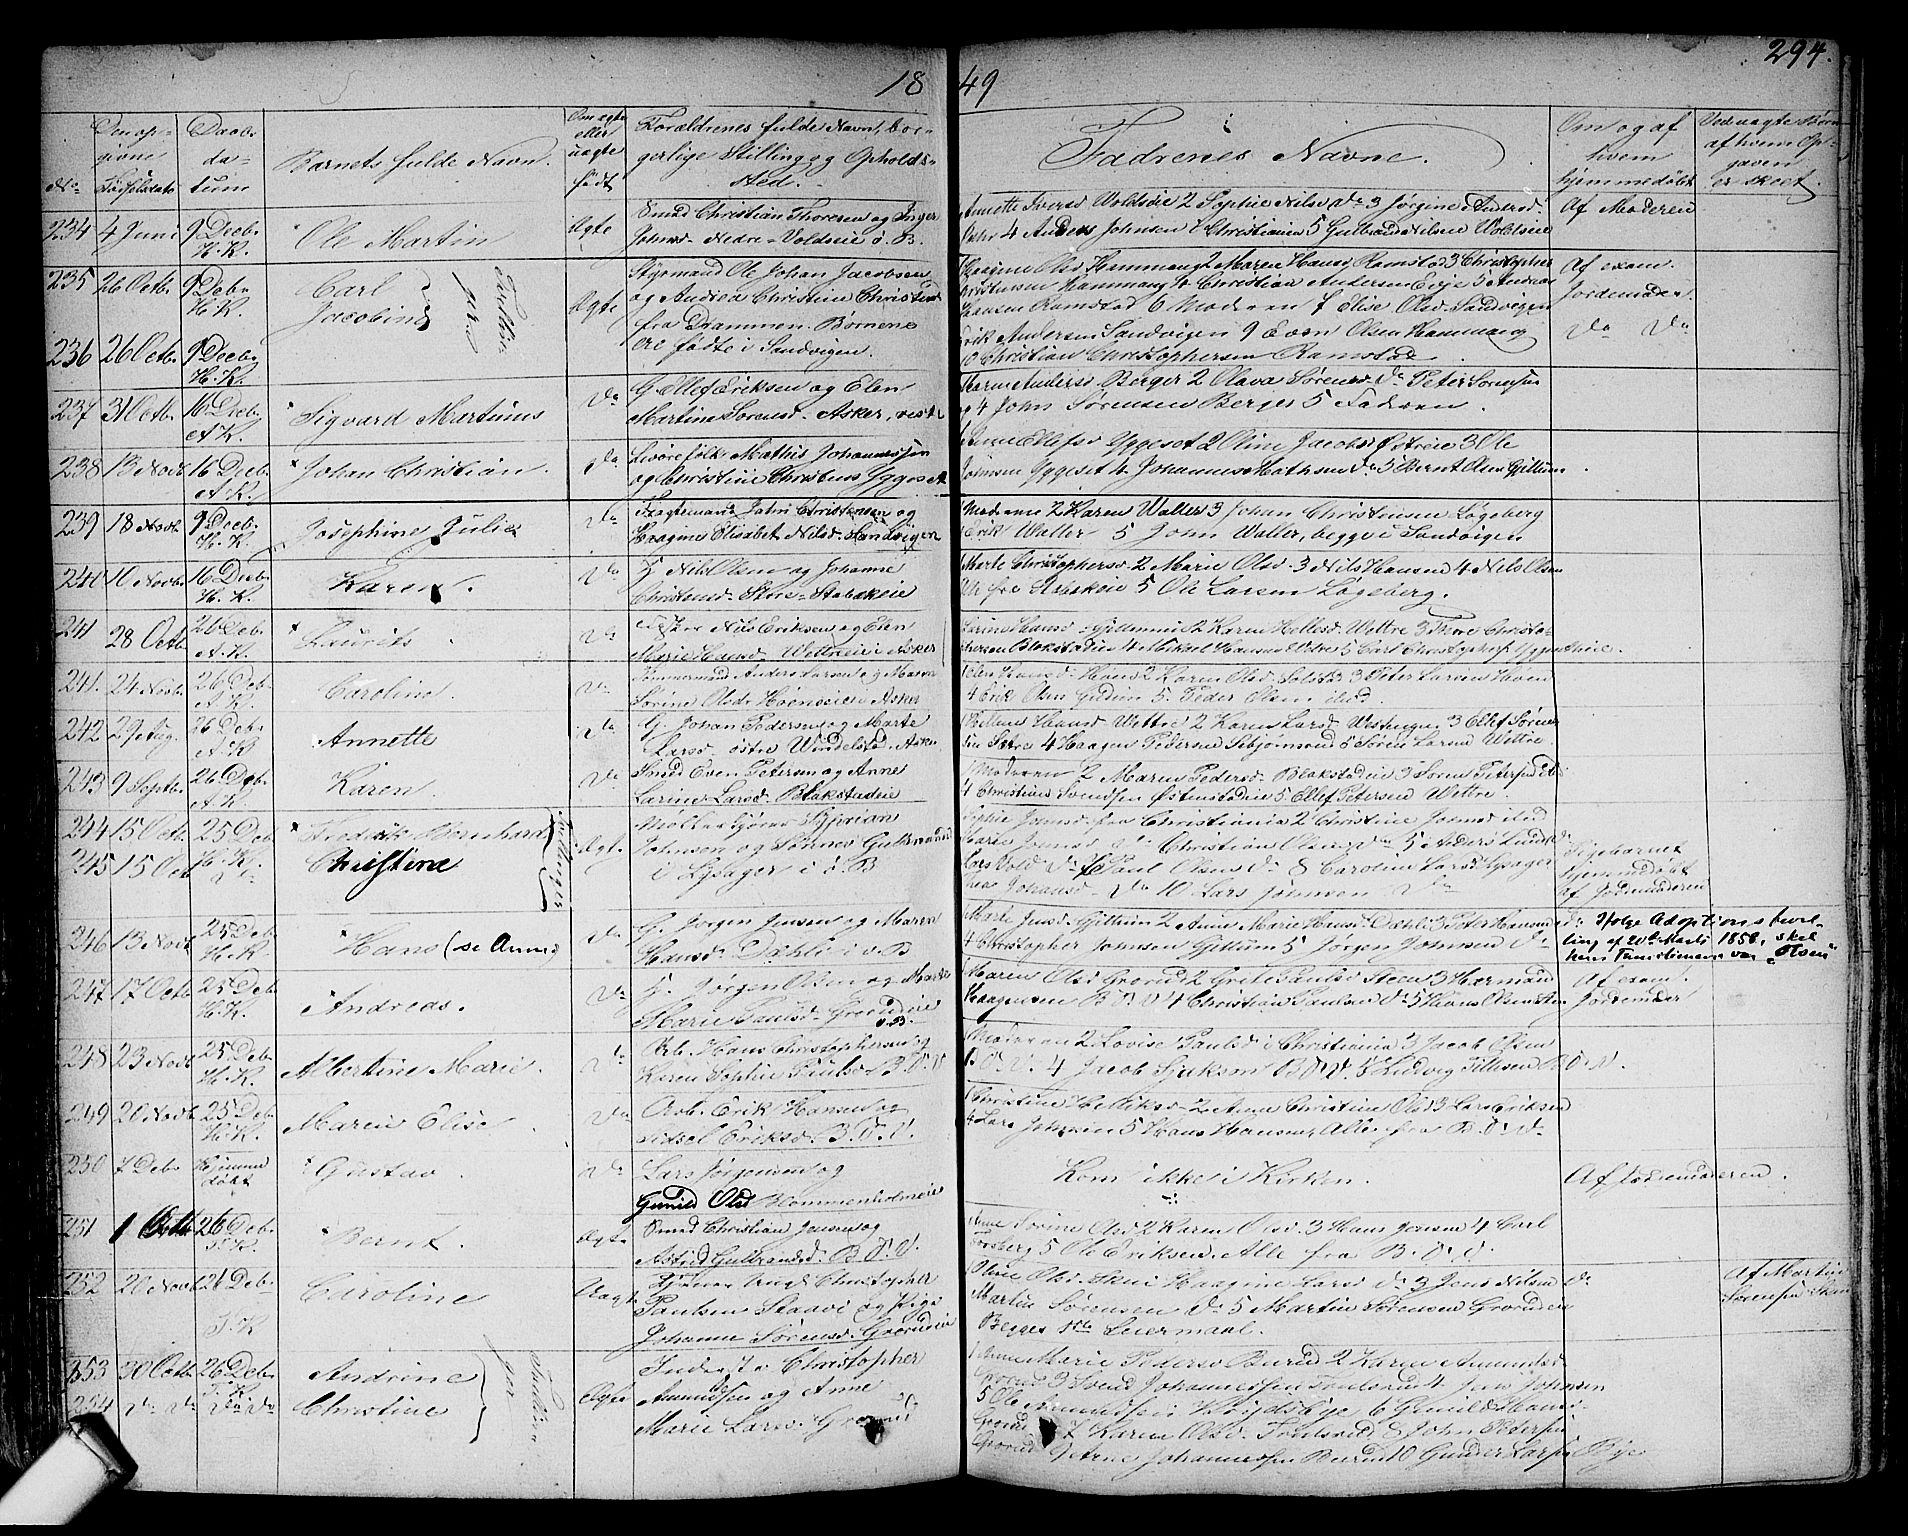 SAO, Asker prestekontor Kirkebøker, F/Fa/L0007: Parish register (official) no. I 7, 1825-1864, p. 294